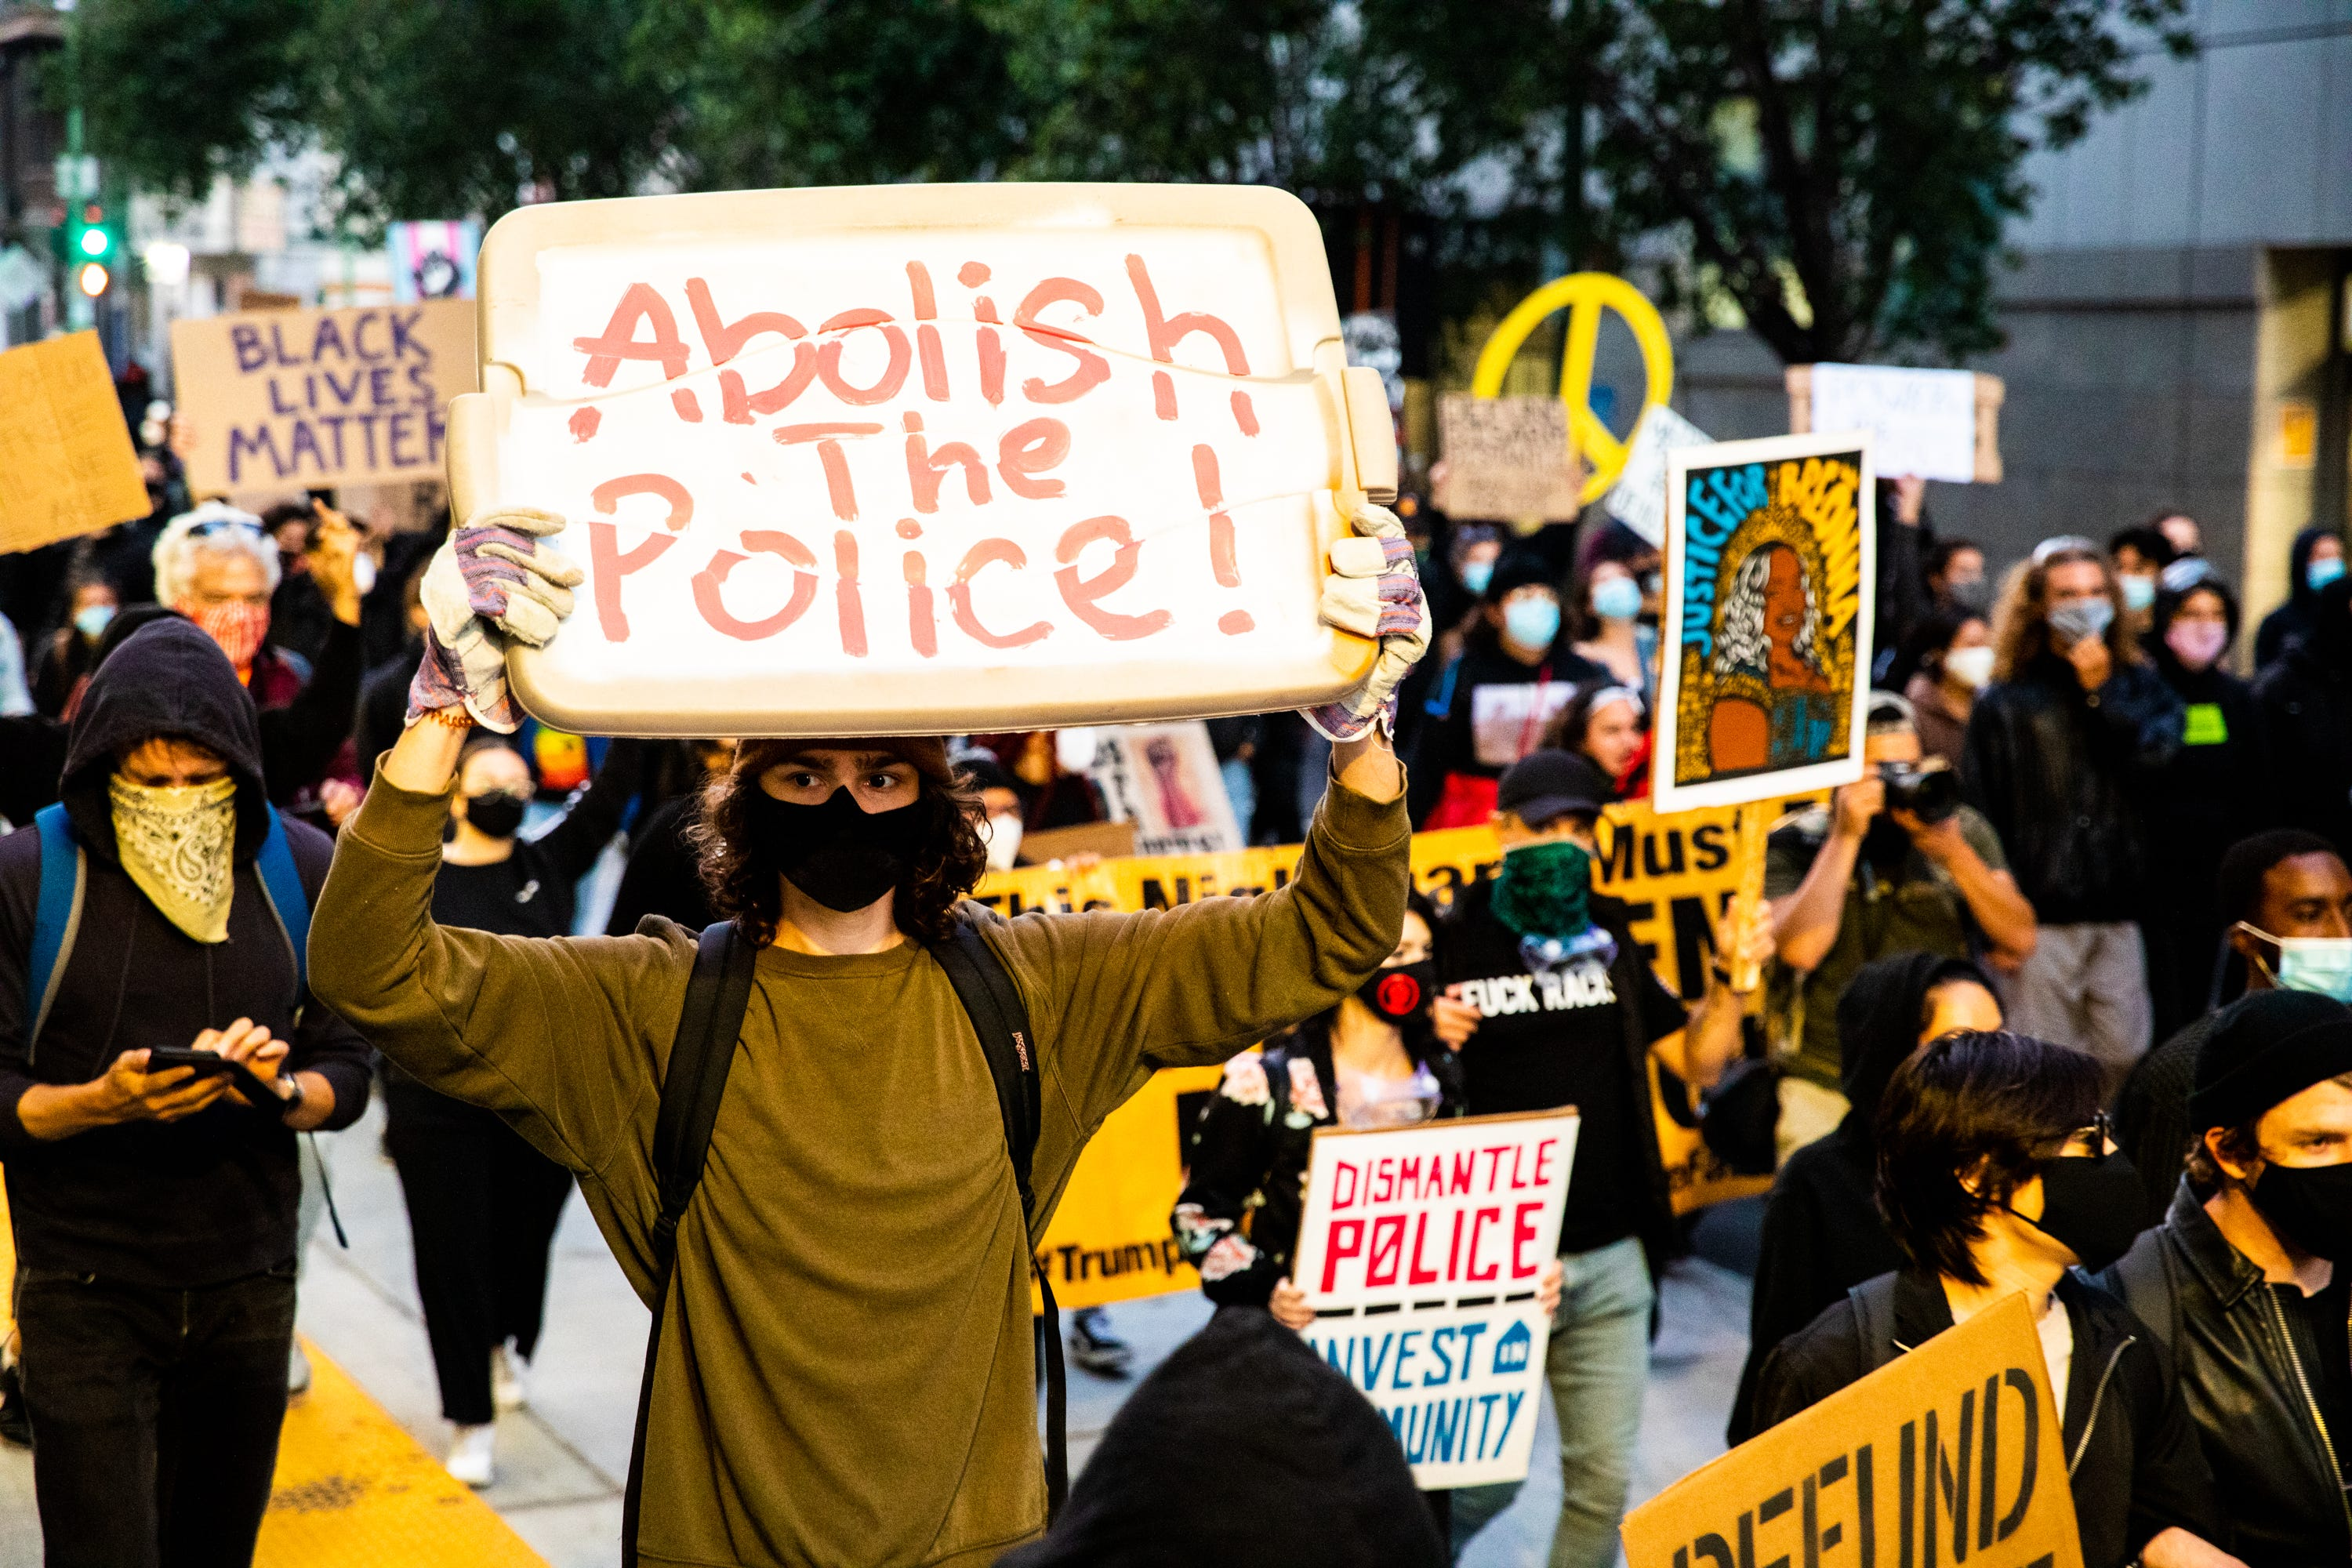 OAKLAND, CALIFORNIA - JULY 25:  Protesters hold signs in support of defunding the police on July 25, 2020 in Oakland, California. Demonstrators in Oakland gathered to protest in solidarity with Portland protests. (Photo by Natasha Moustache/Getty Images)